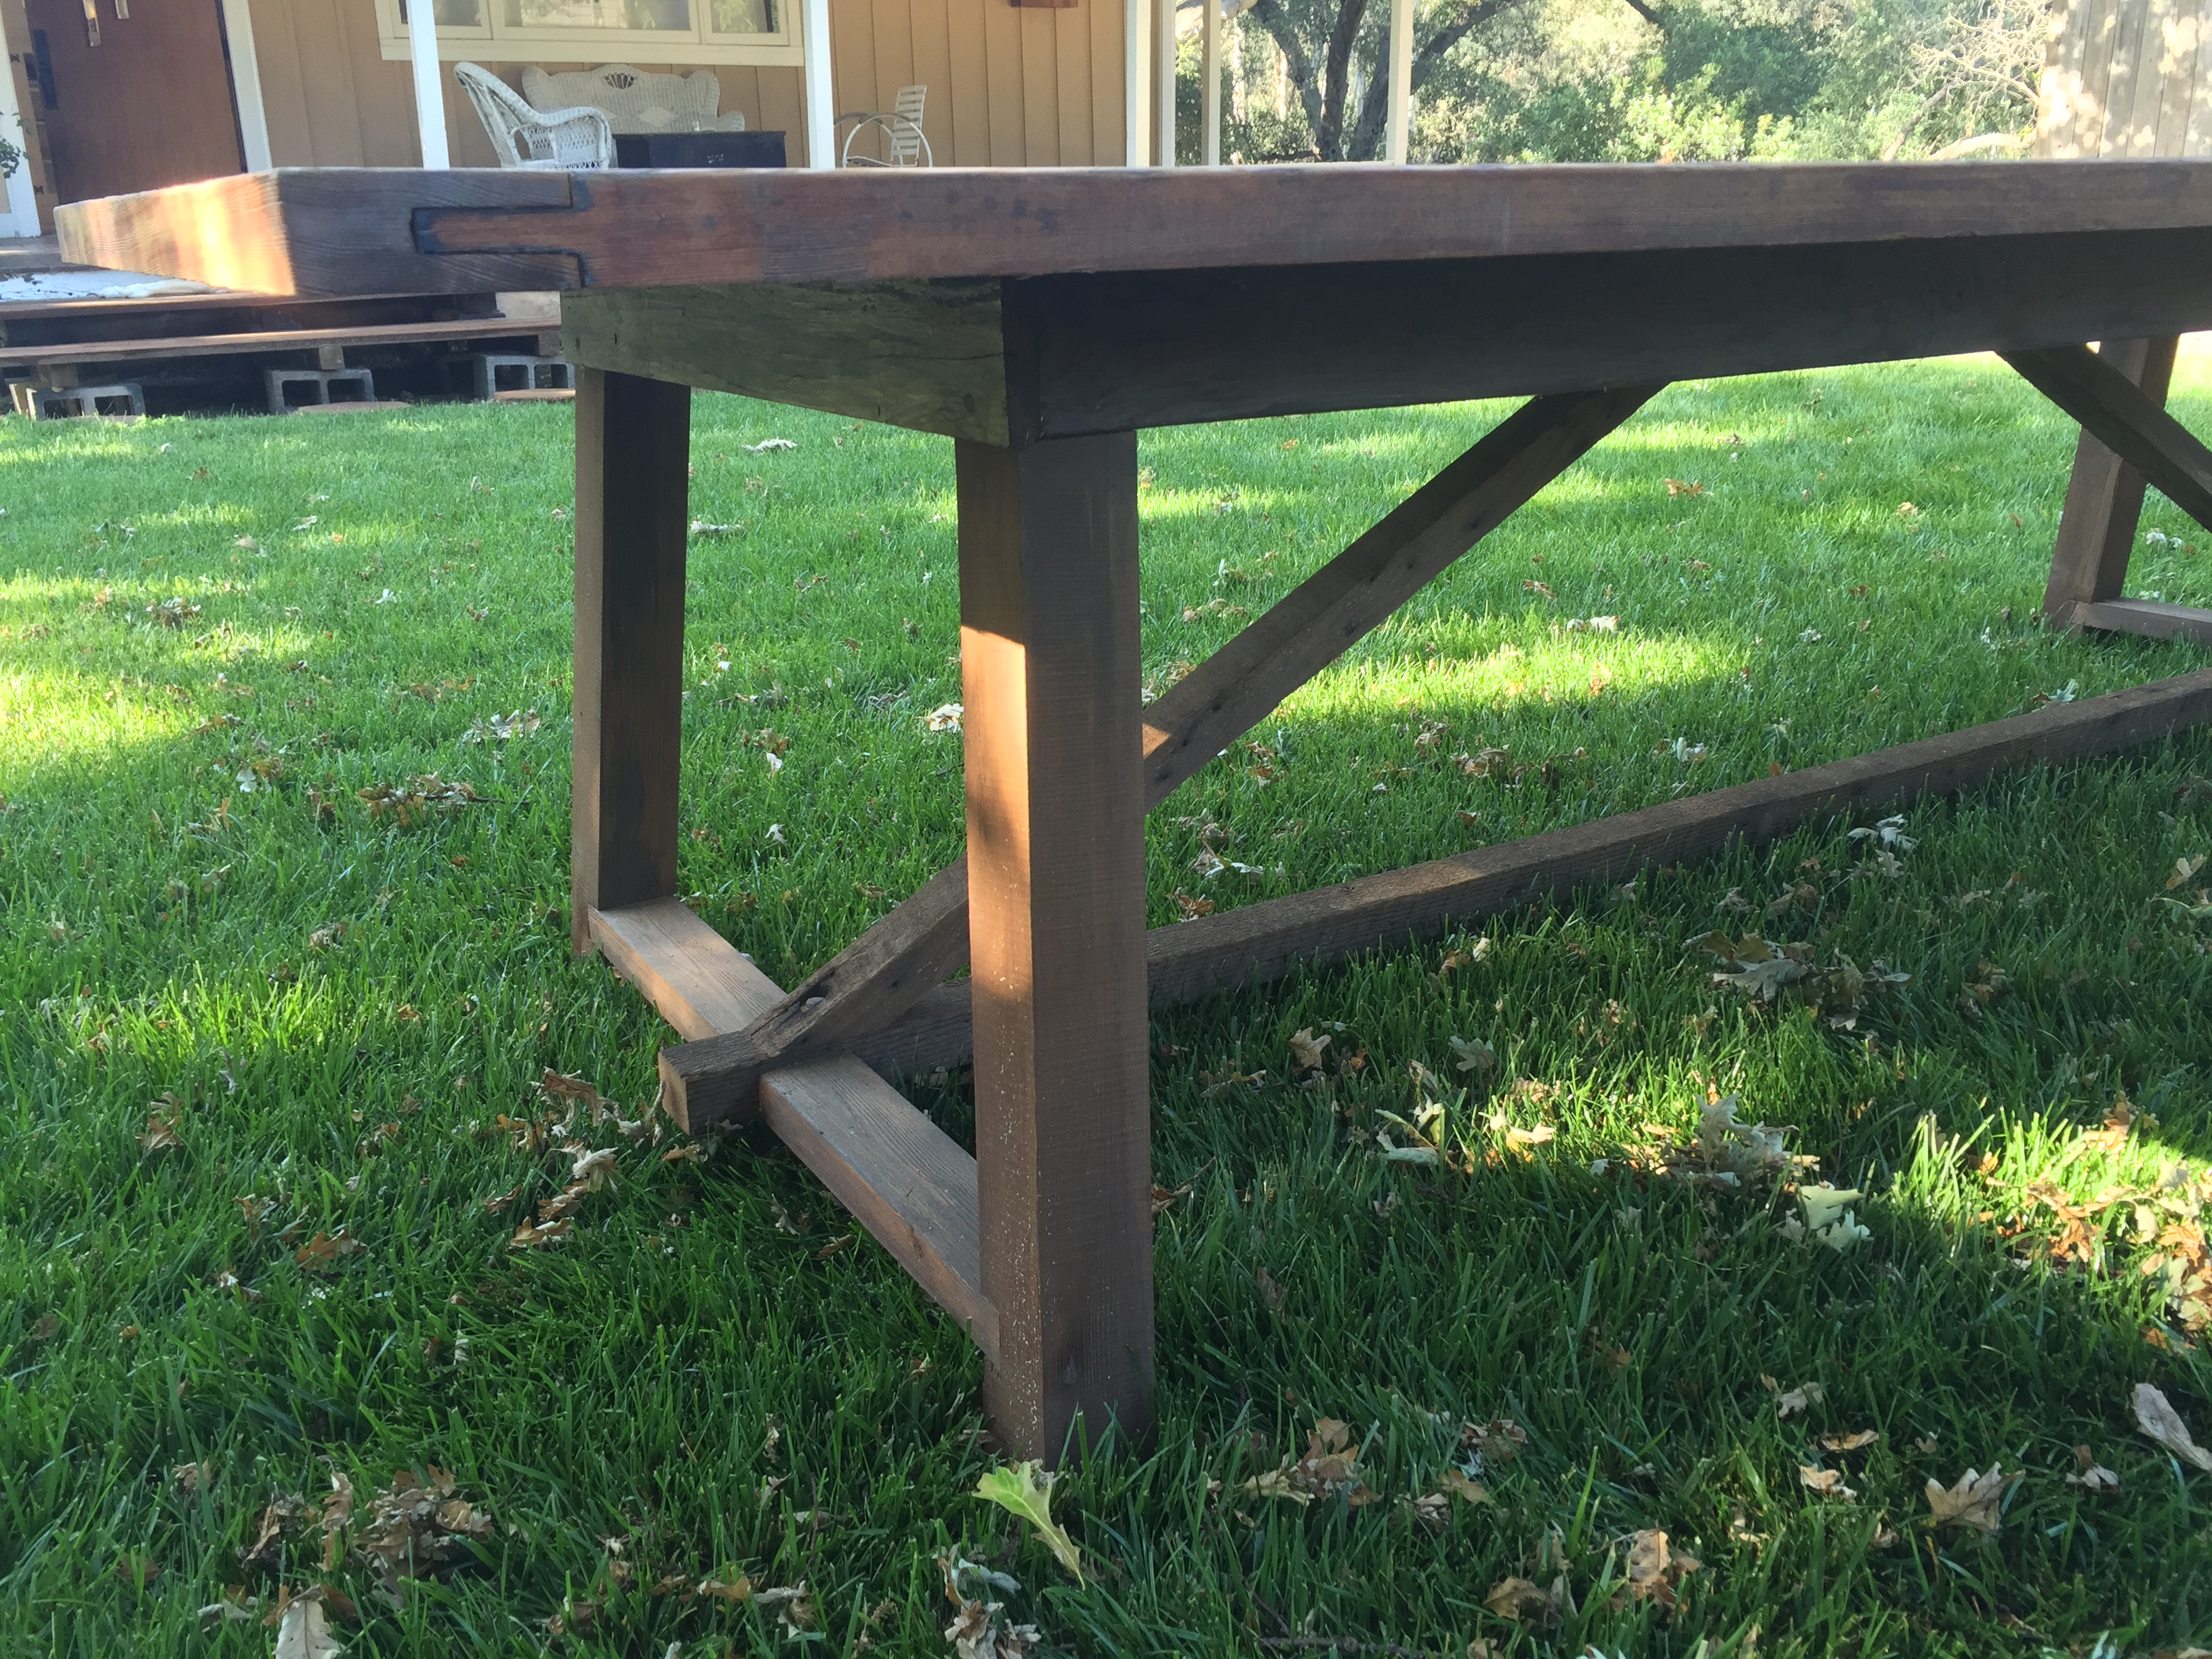 10 Salvaged Reclaimed Wood Outdoor Dining Table Chairish : 9cafb30d c5c5 4694 9a78 35fc91c4e838aspectfitampwidth640ampheight640 from www.chairish.com size 640 x 640 jpeg 79kB